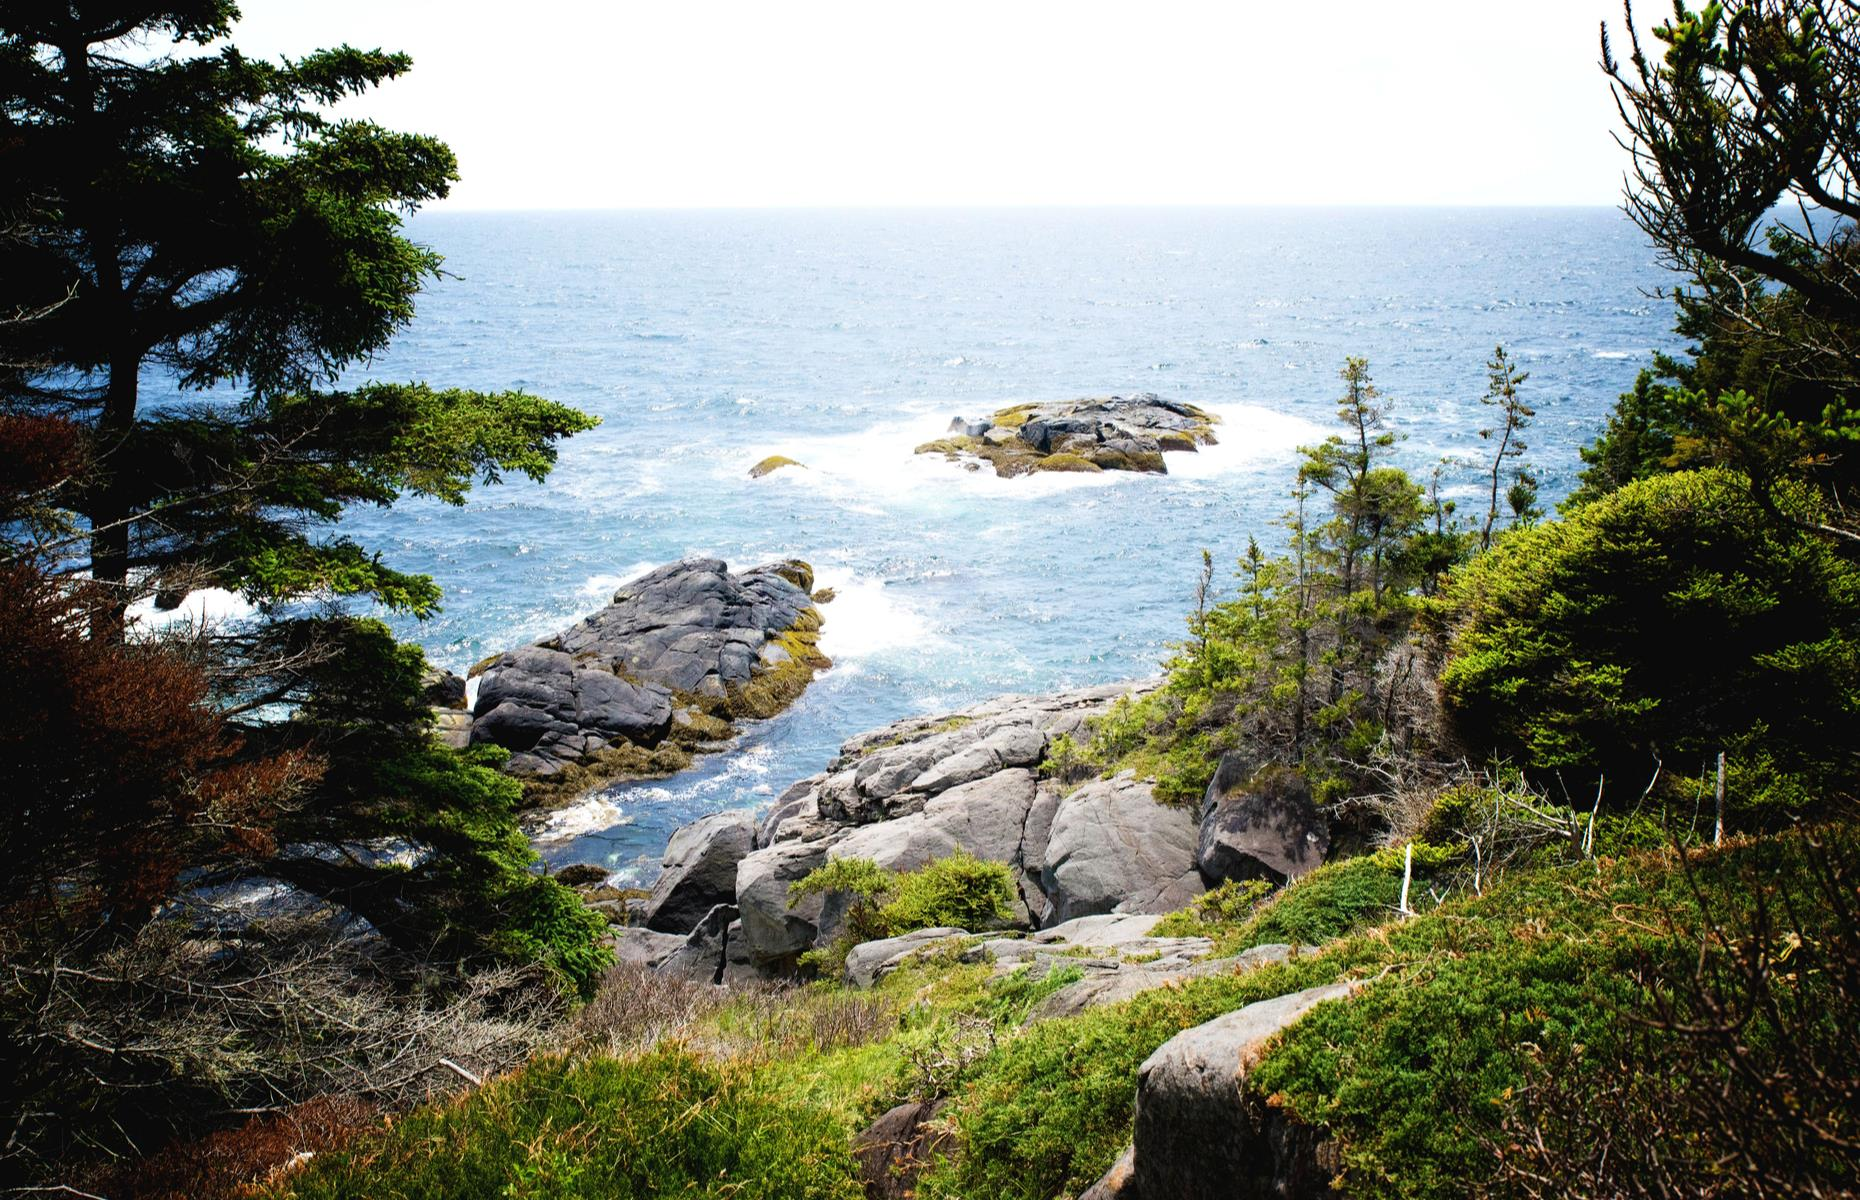 Slide 10 of 32: Monhegan Island, off the mid-coast of Maine, is an inspiring landscape. Not surprising then that the majority of the 70-odd people who live on the mountainous enclave are artists. It's a place with moody woodland, ocean bluffs, craggy outcrops and salty sea air.